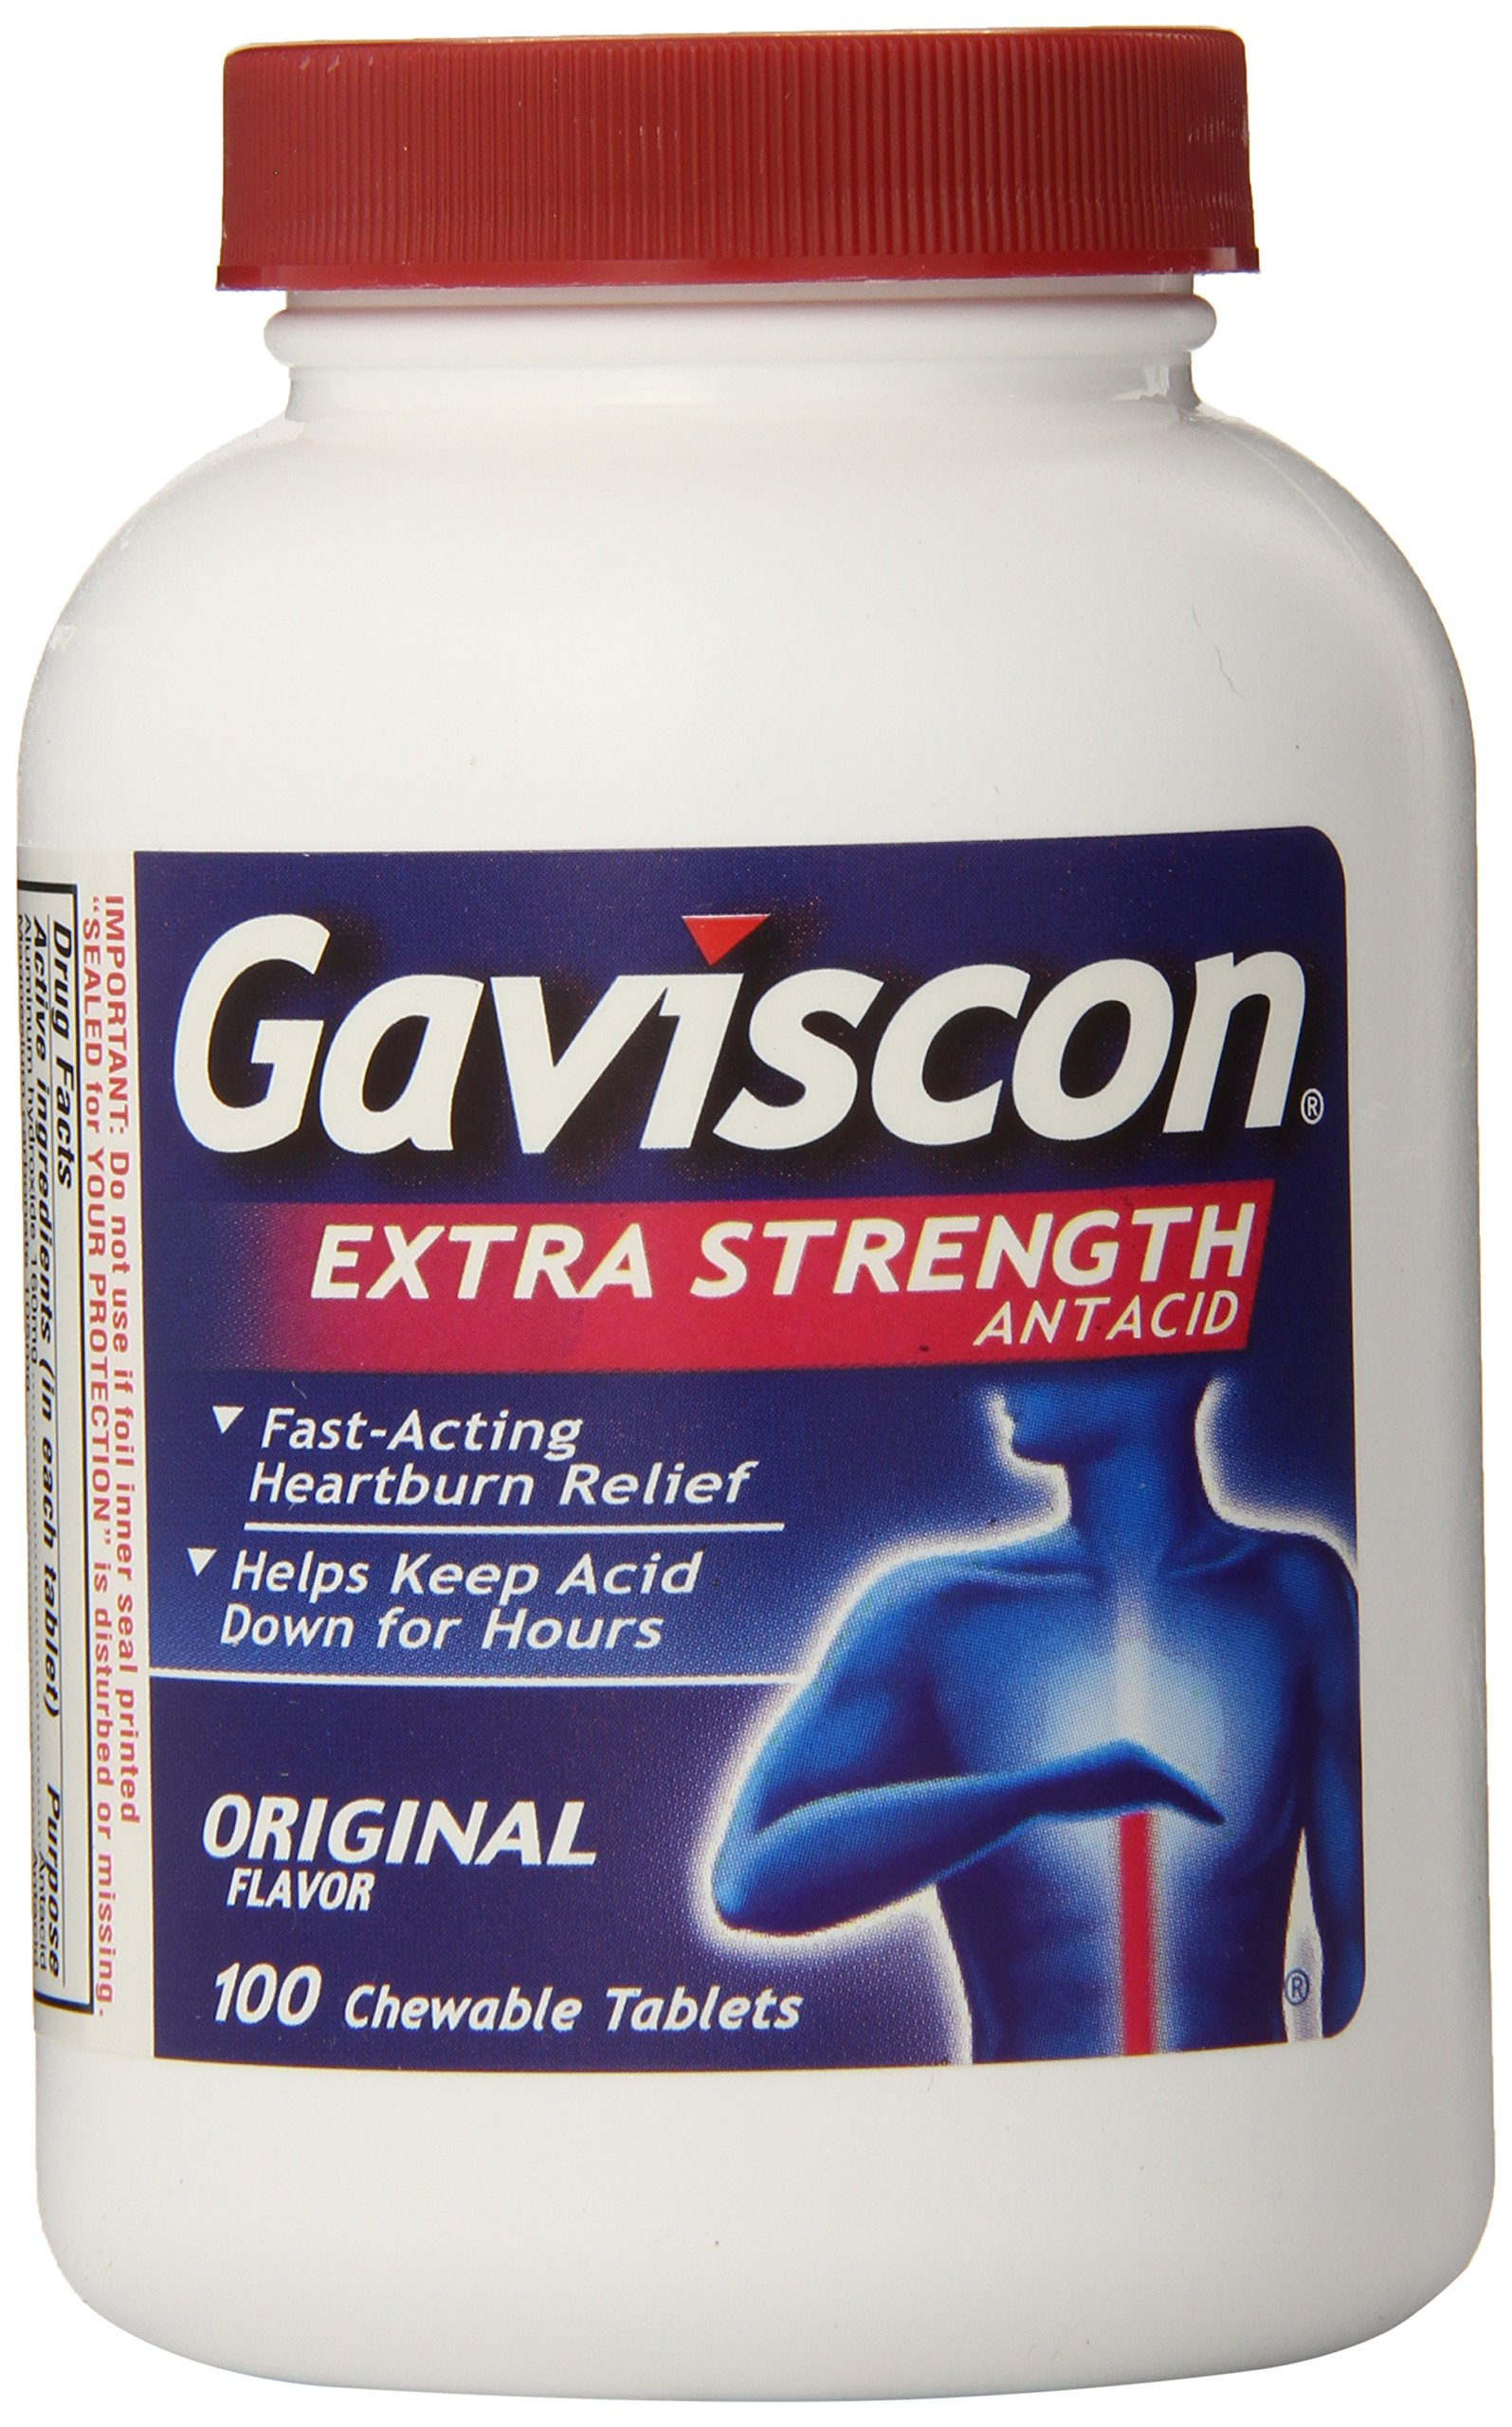 Gaviscon Extra Strength Chewable Antacid Tablets, Original Flavor, 100 Count (Pack of 12) by Gaviscon